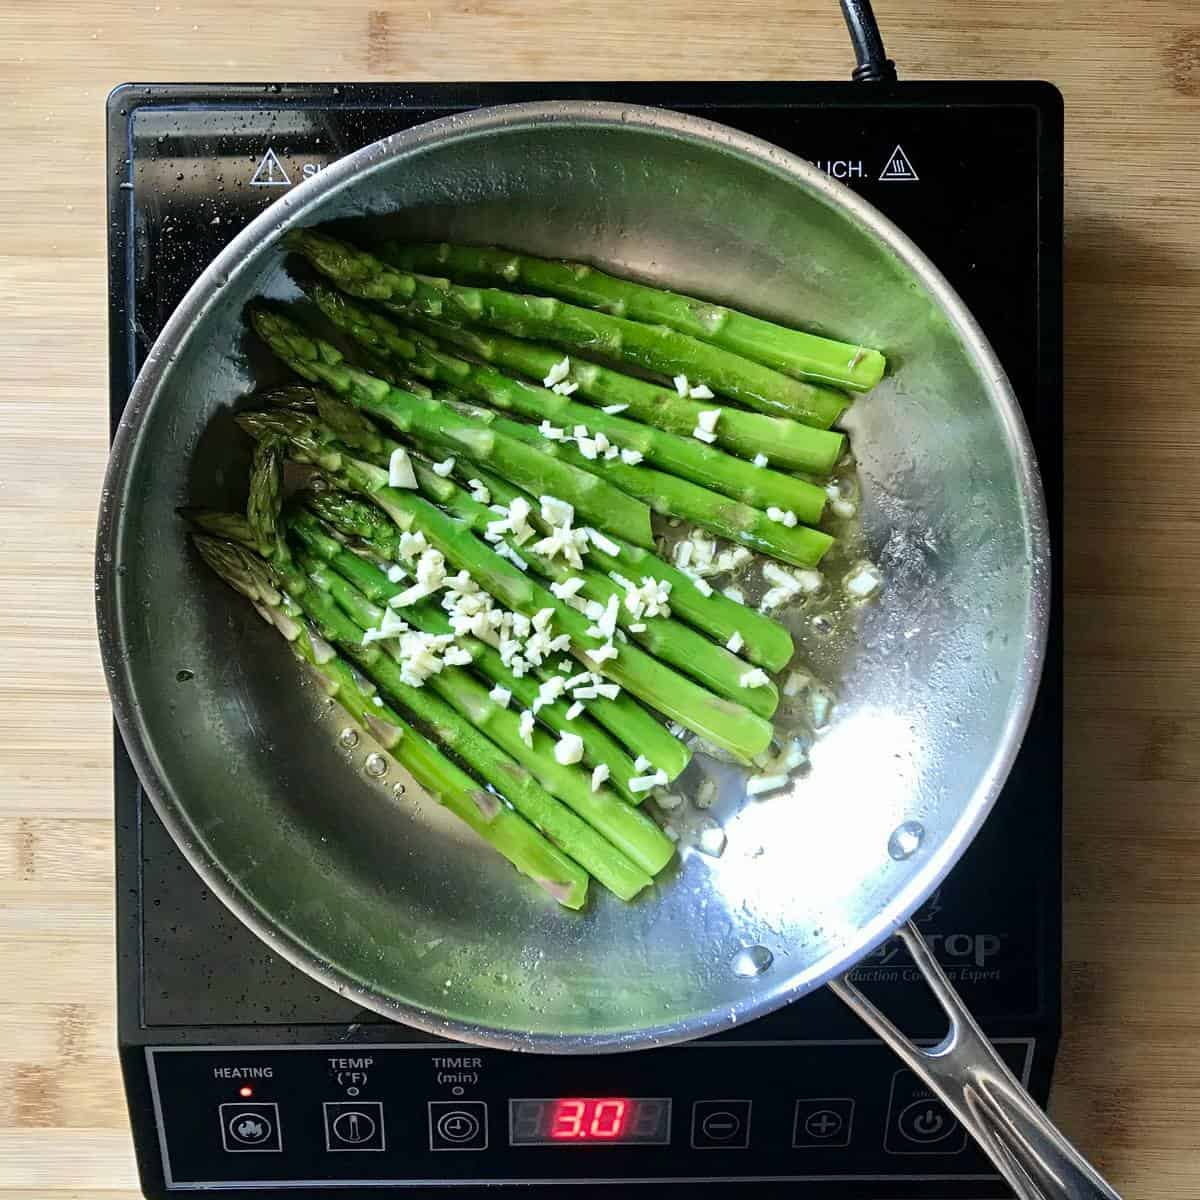 Sauteed asparagus with chopped garlic in a pan.